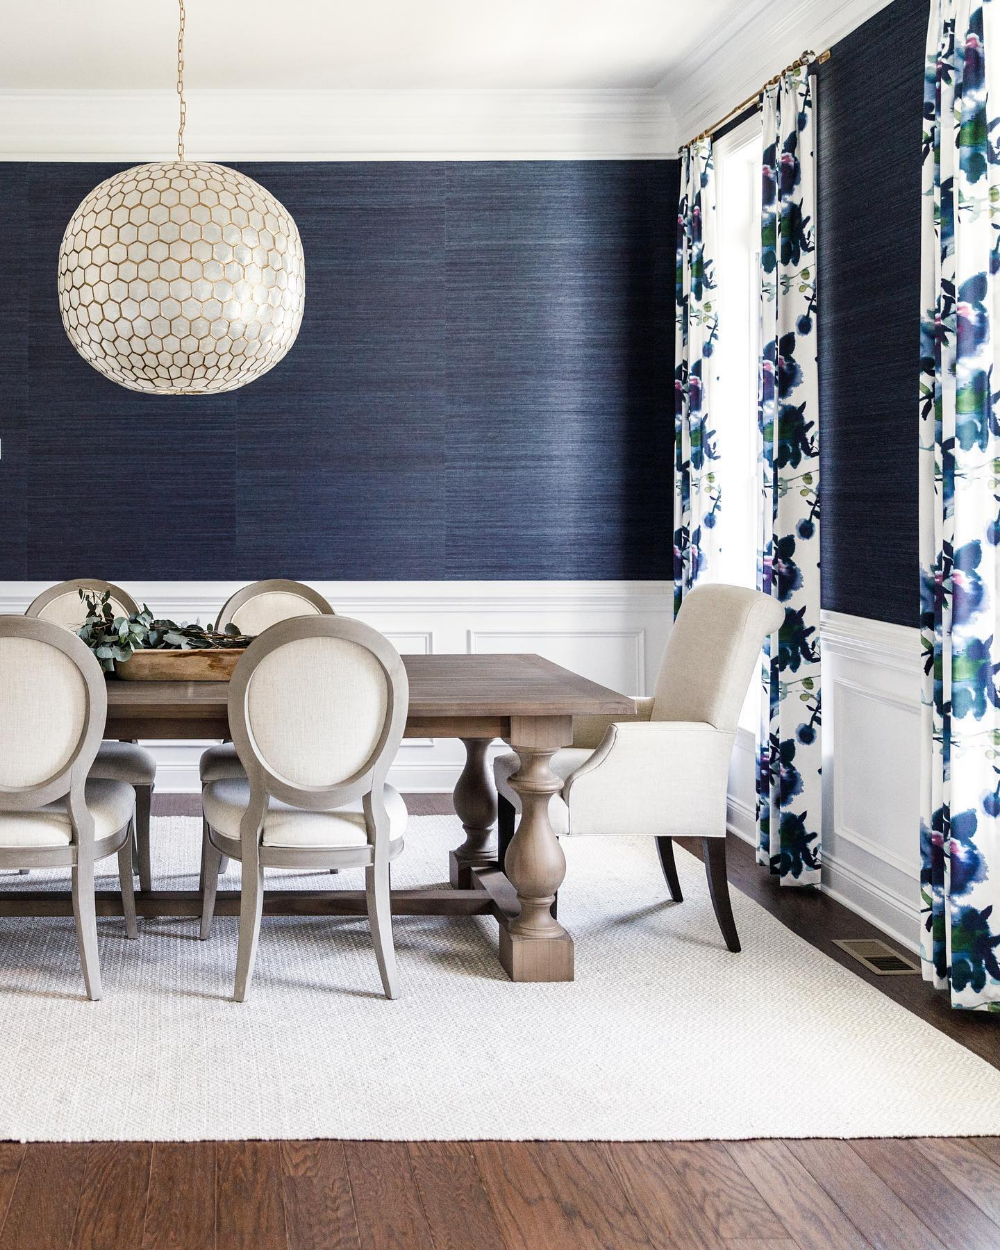 Grasscloth Wallcovering in 2020 | Dining room accents ...